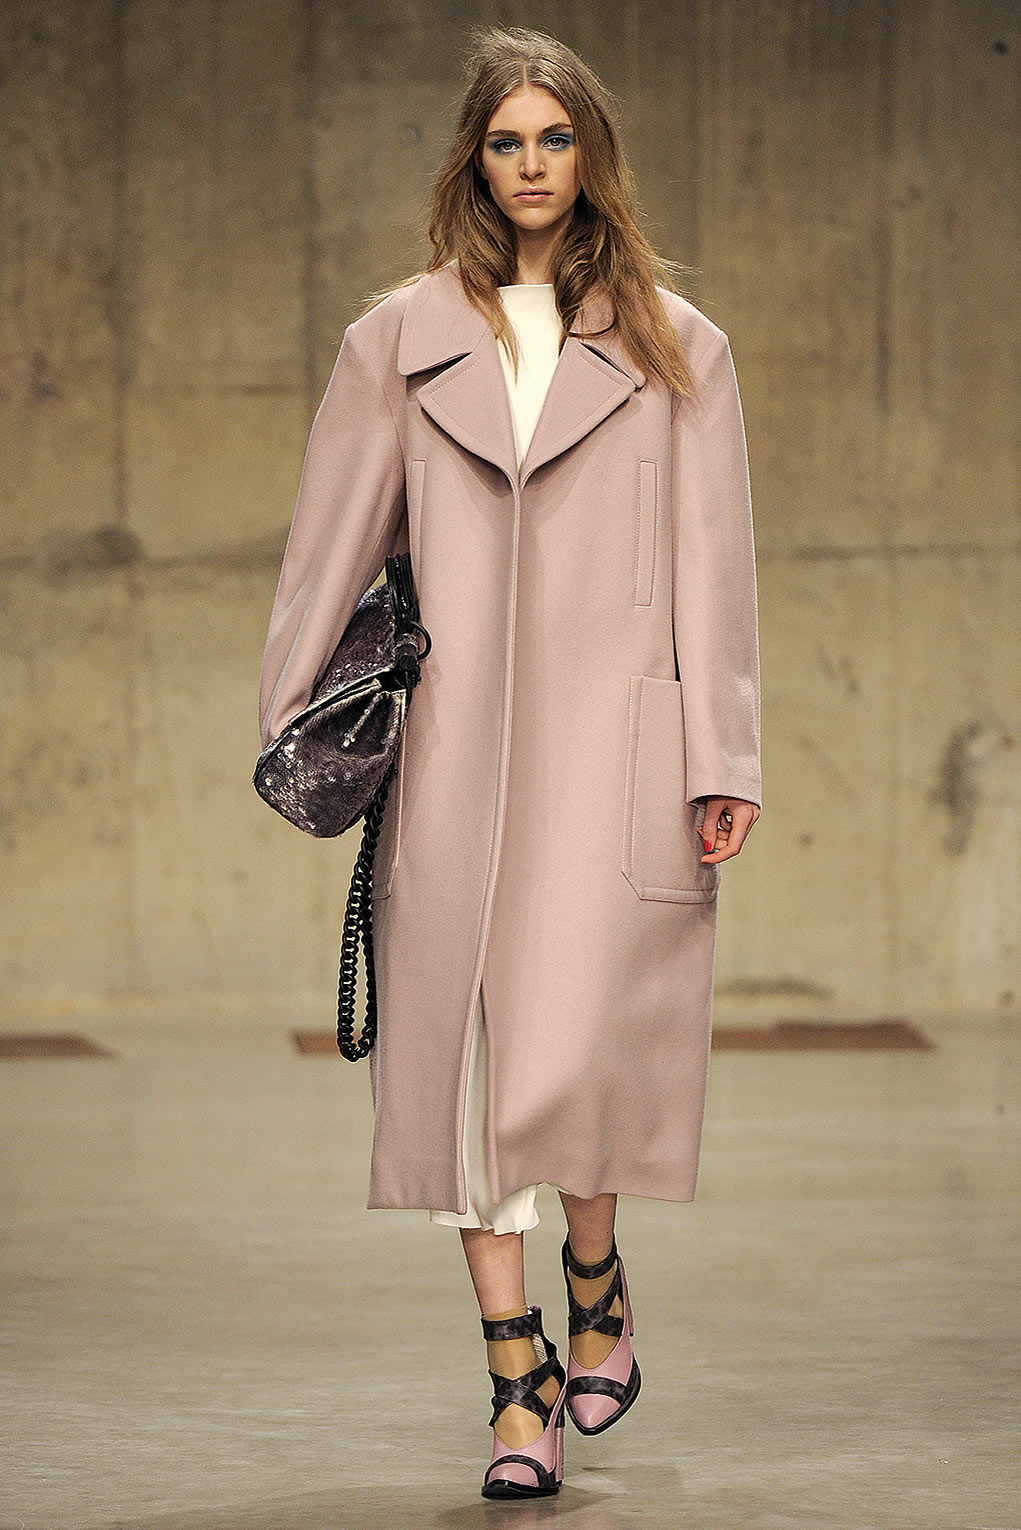 Topshop Pink Coat | Down Coat